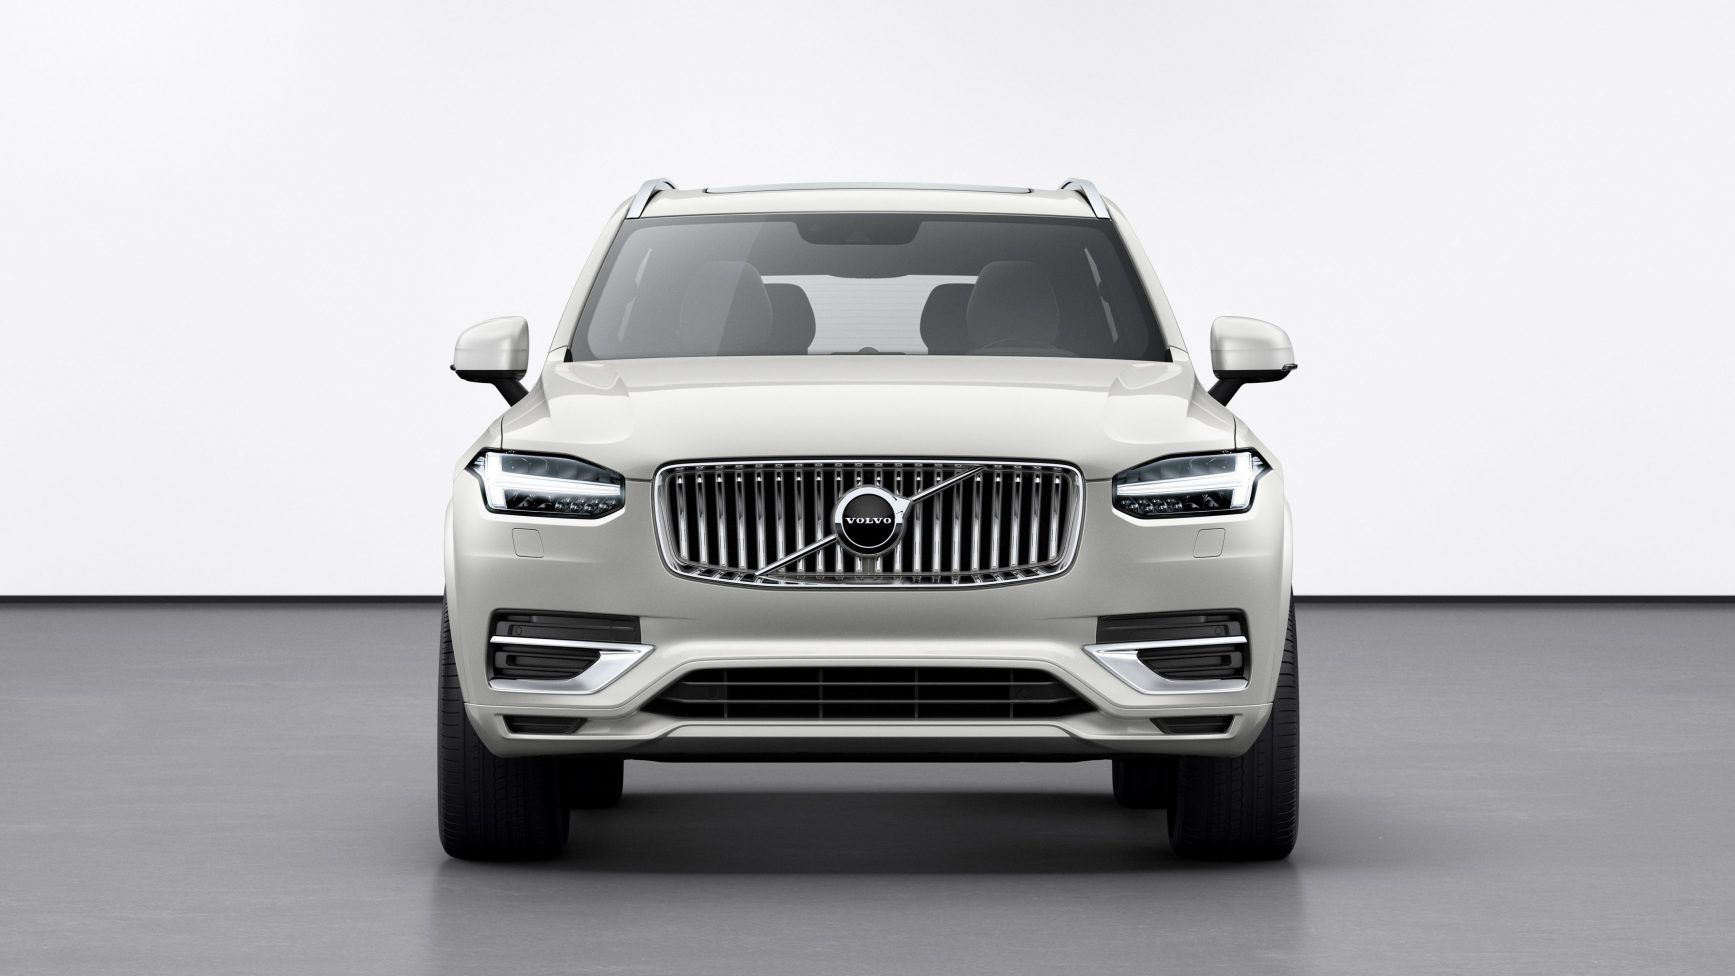 2020 Volvo Xc90 Review Release Date Changes Price Engine Photos